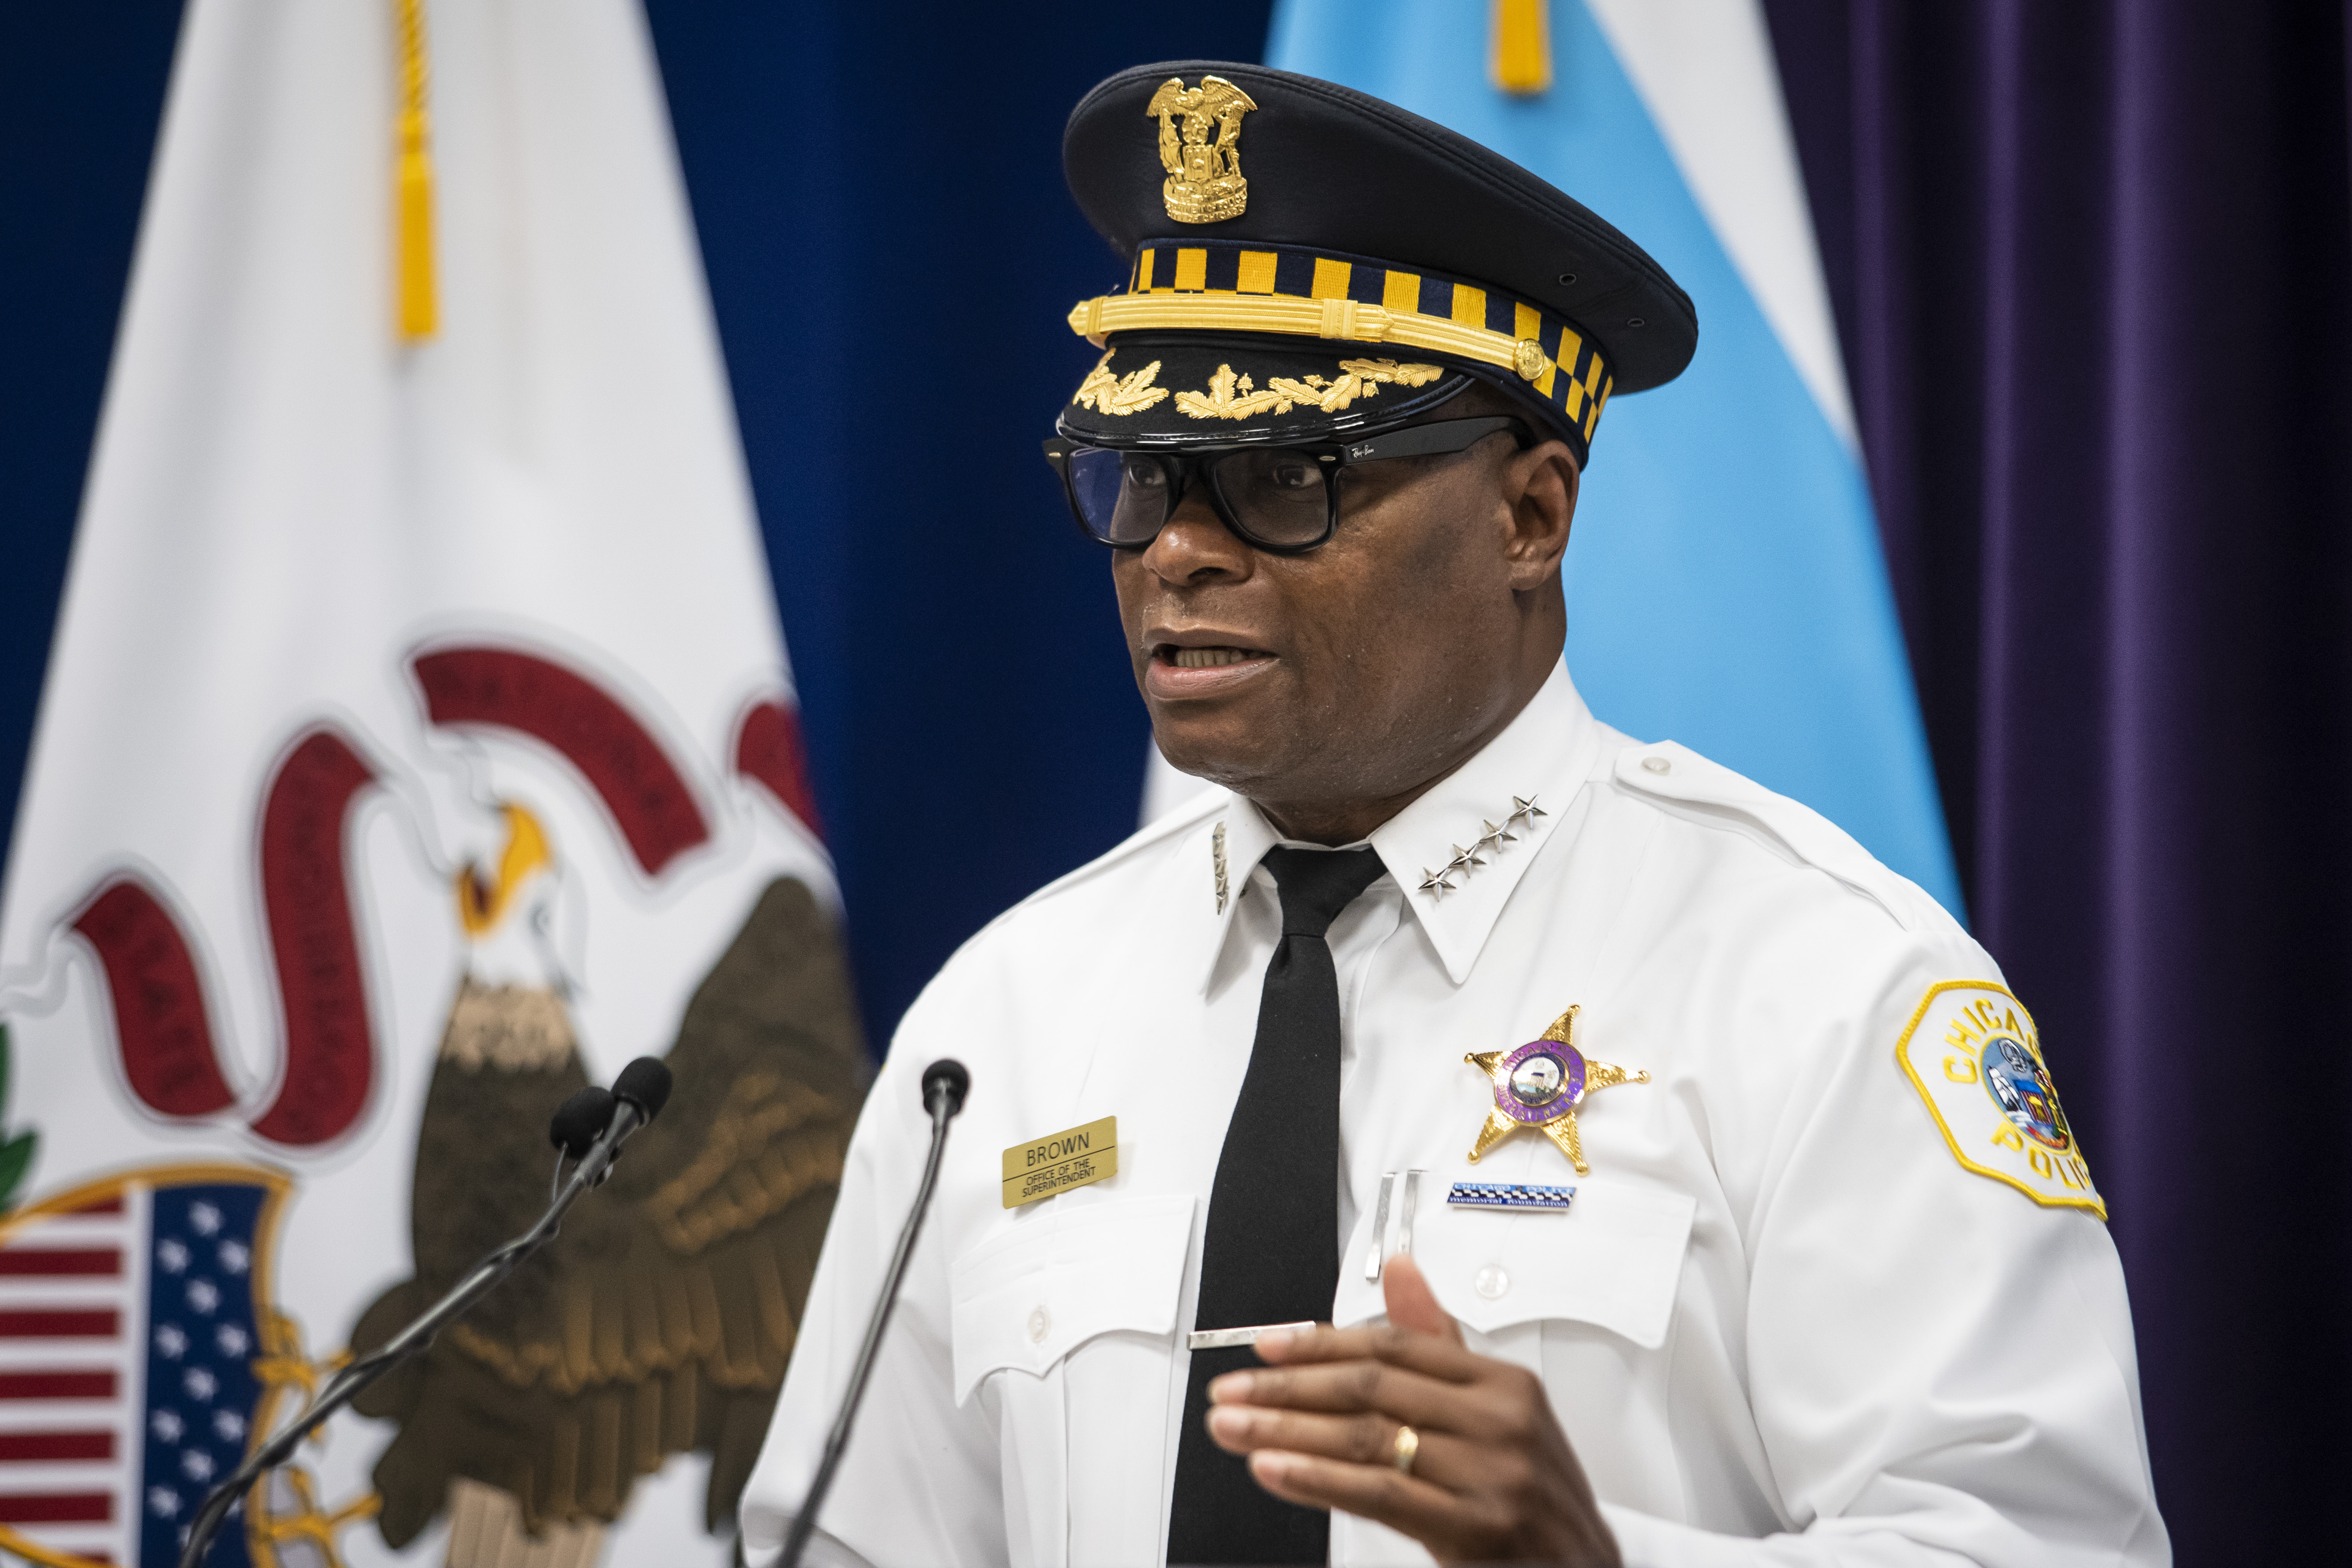 Chicago Police Supt. David Brown discusses the city's weekend gun violence during a press conference at CPD headquarters in Bronzeville, Monday morning, Sept. 28, 2020.